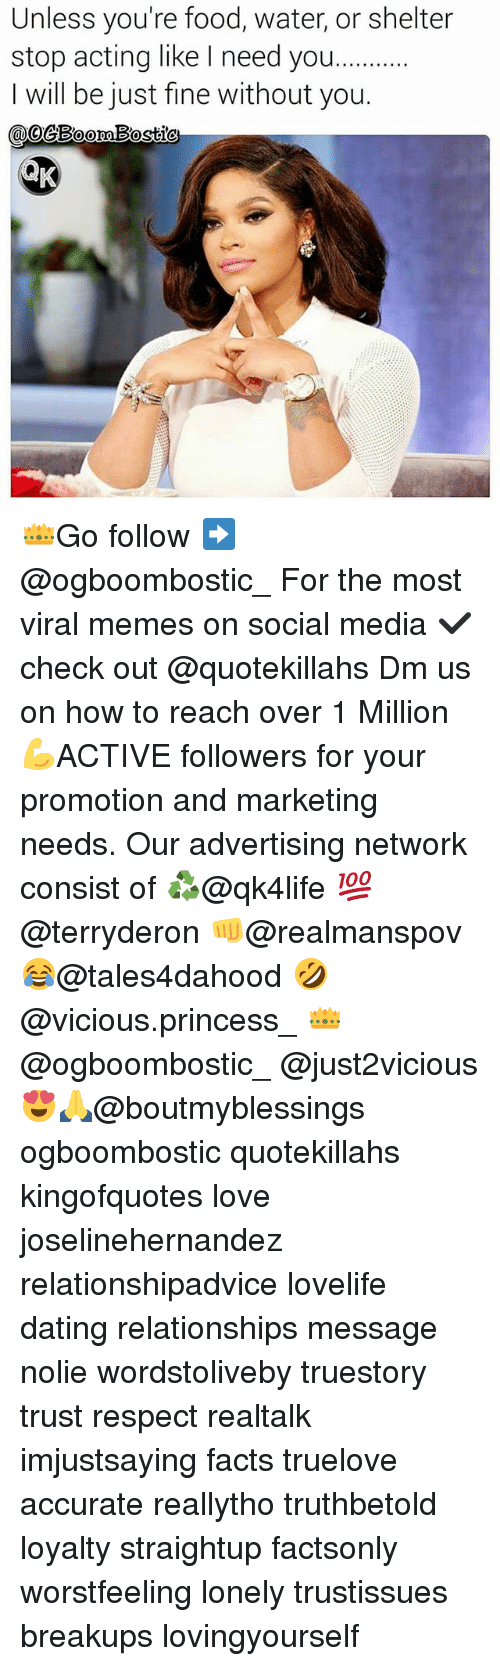 Dating, Facts, and Food: Unless you're food, water, or shelter  stop acting like l need you.  I will be just fine without you  geBoomBostic 👑Go follow ➡@ogboombostic_ For the most viral memes on social media ✔check out @quotekillahs Dm us on how to reach over 1 Million💪ACTIVE followers for your promotion and marketing needs. Our advertising network consist of ♻@qk4life 💯@terryderon 👊@realmanspov 😂@tales4dahood 🤣@vicious.princess_ 👑@ogboombostic_ @just2vicious😍🙏@boutmyblessings ogboombostic quotekillahs kingofquotes love joselinehernandez relationshipadvice lovelife dating relationships message nolie wordstoliveby truestory trust respect realtalk imjustsaying facts truelove accurate reallytho truthbetold loyalty straightup factsonly worstfeeling lonely trustissues breakups lovingyourself